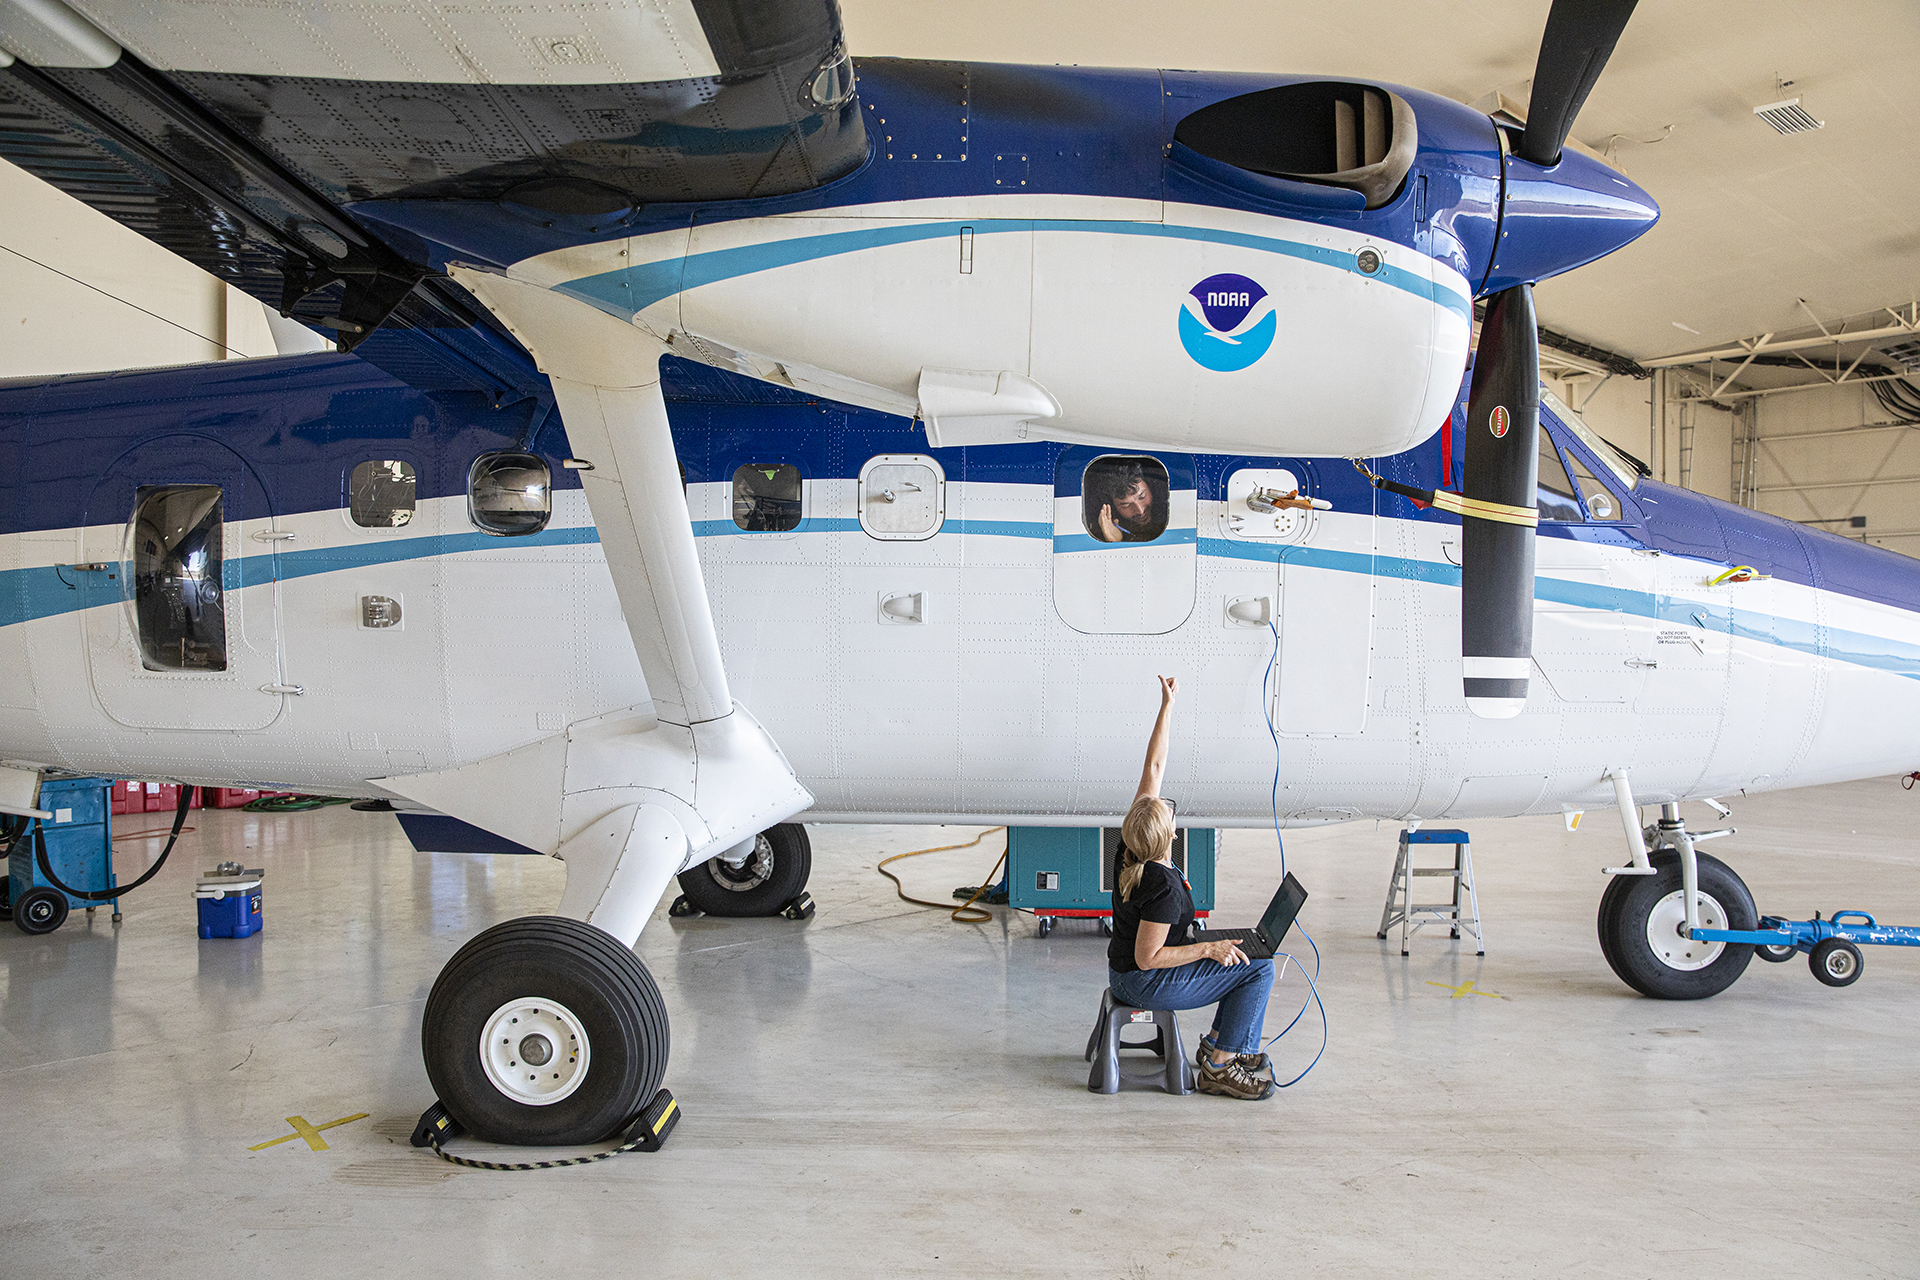 NOAA researchers Anne Middlebrook is seated under the plane and Alessandro Franchin is in the plane window.